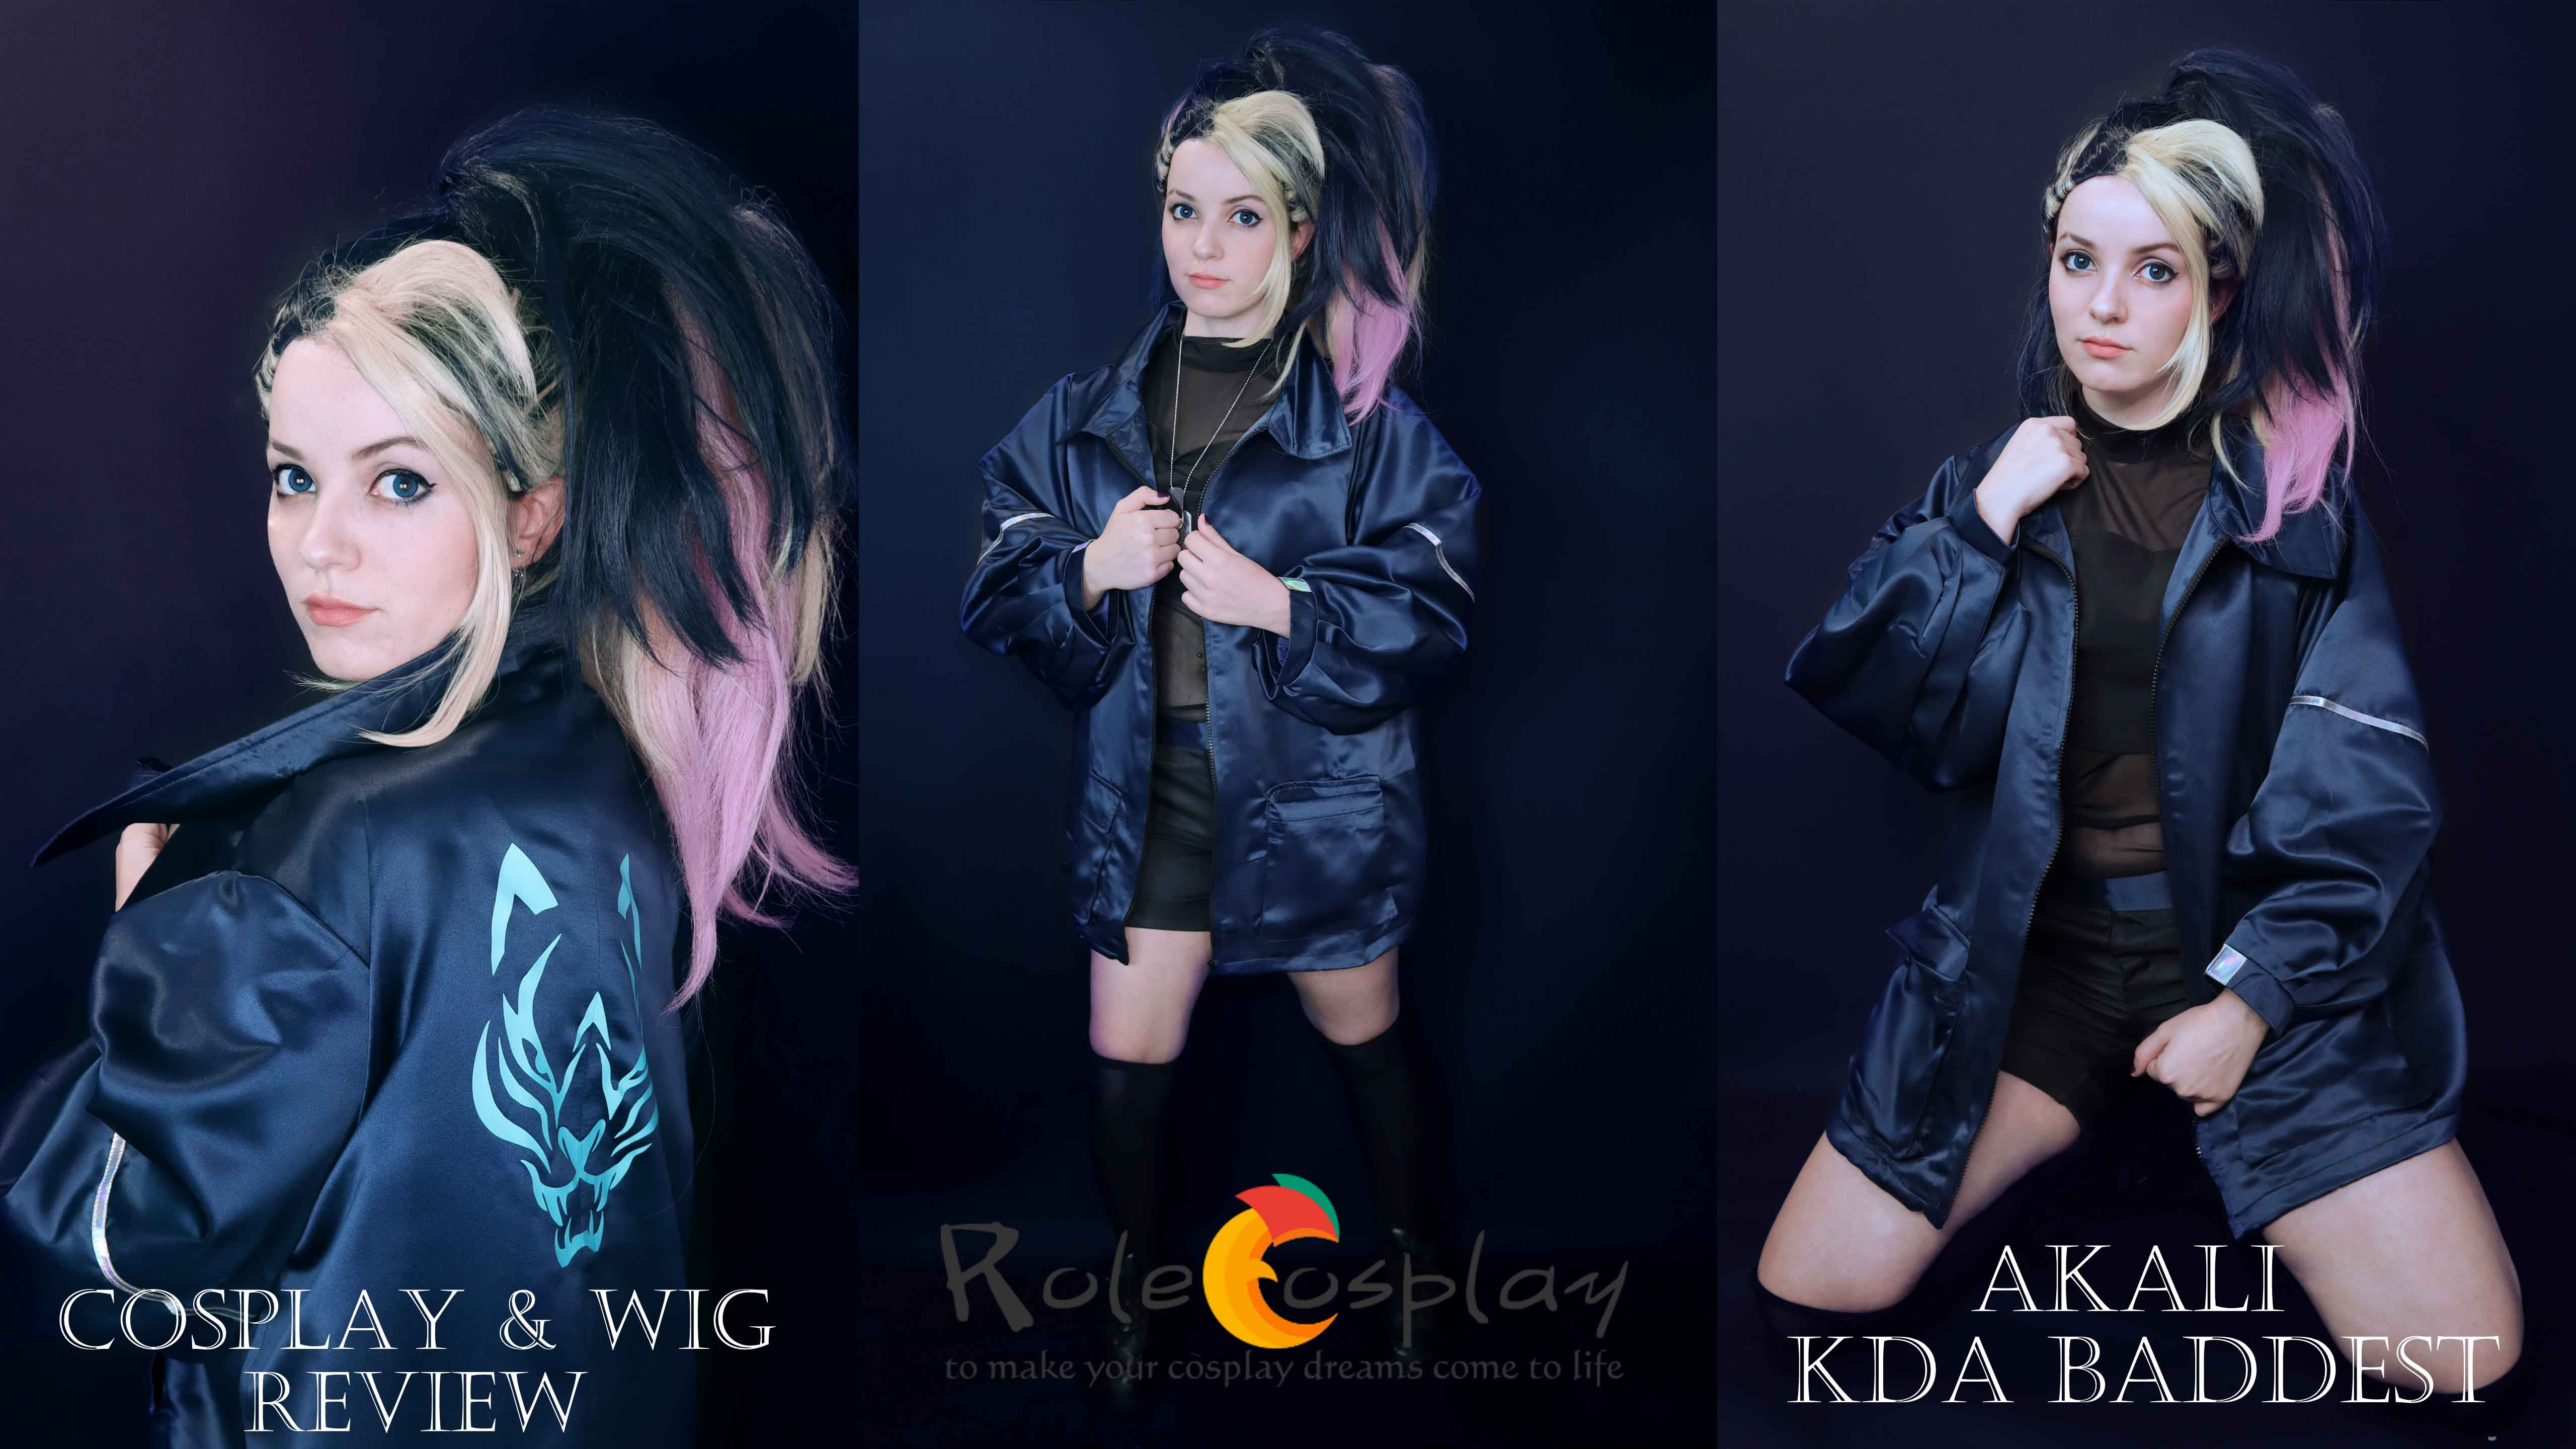 Cosplay & wig review: Akali KDA Baddest from Rolecosplay